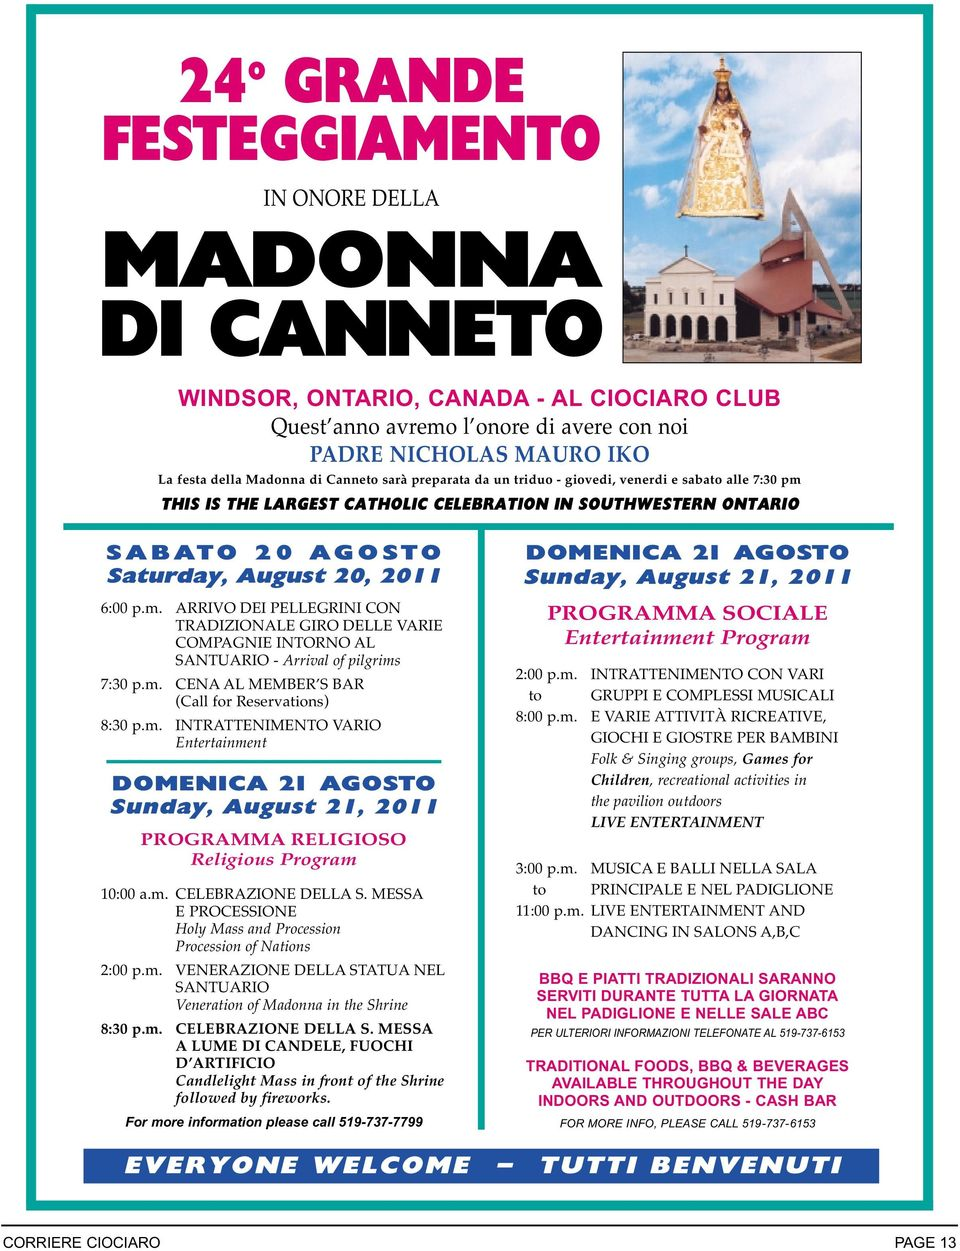 m. CENA AL MEMBER S BAR (Call for Reservations) 8:30 p.m. INTRATTENIMENTO VARIO Entertainment DOMENICA 21 AGOSTO Sunday, August 21, 2011 PROGRAMMA RELIGIOSO Religious Program 10:00 a.m. CELEBRAZIONE DELLA S.